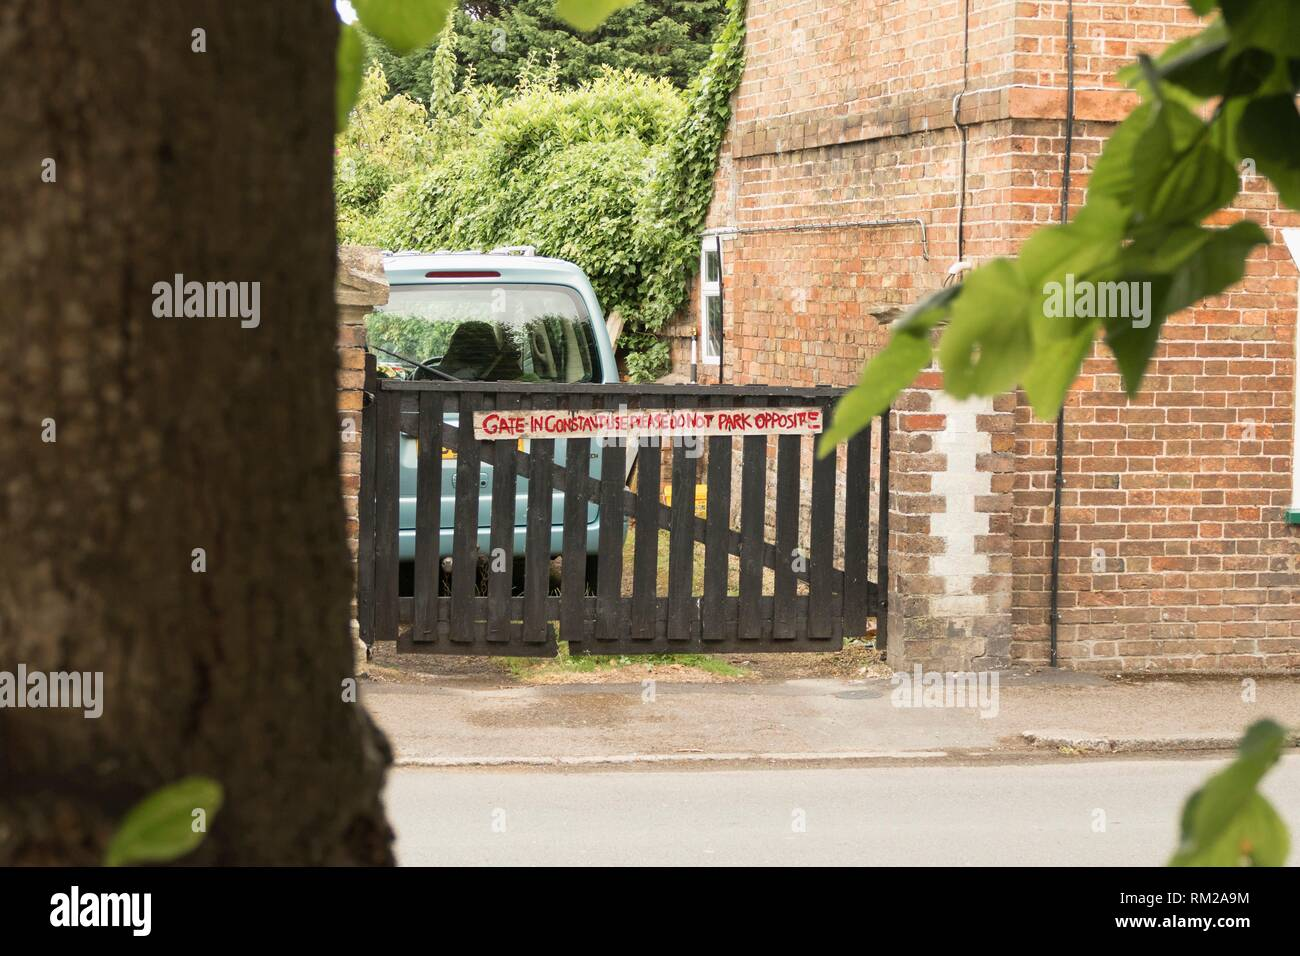 ´Please do not park opposite´, hand written sign in red paint attached to a gate in Frampton on Severn, the Cotswolds, England. - Stock Image